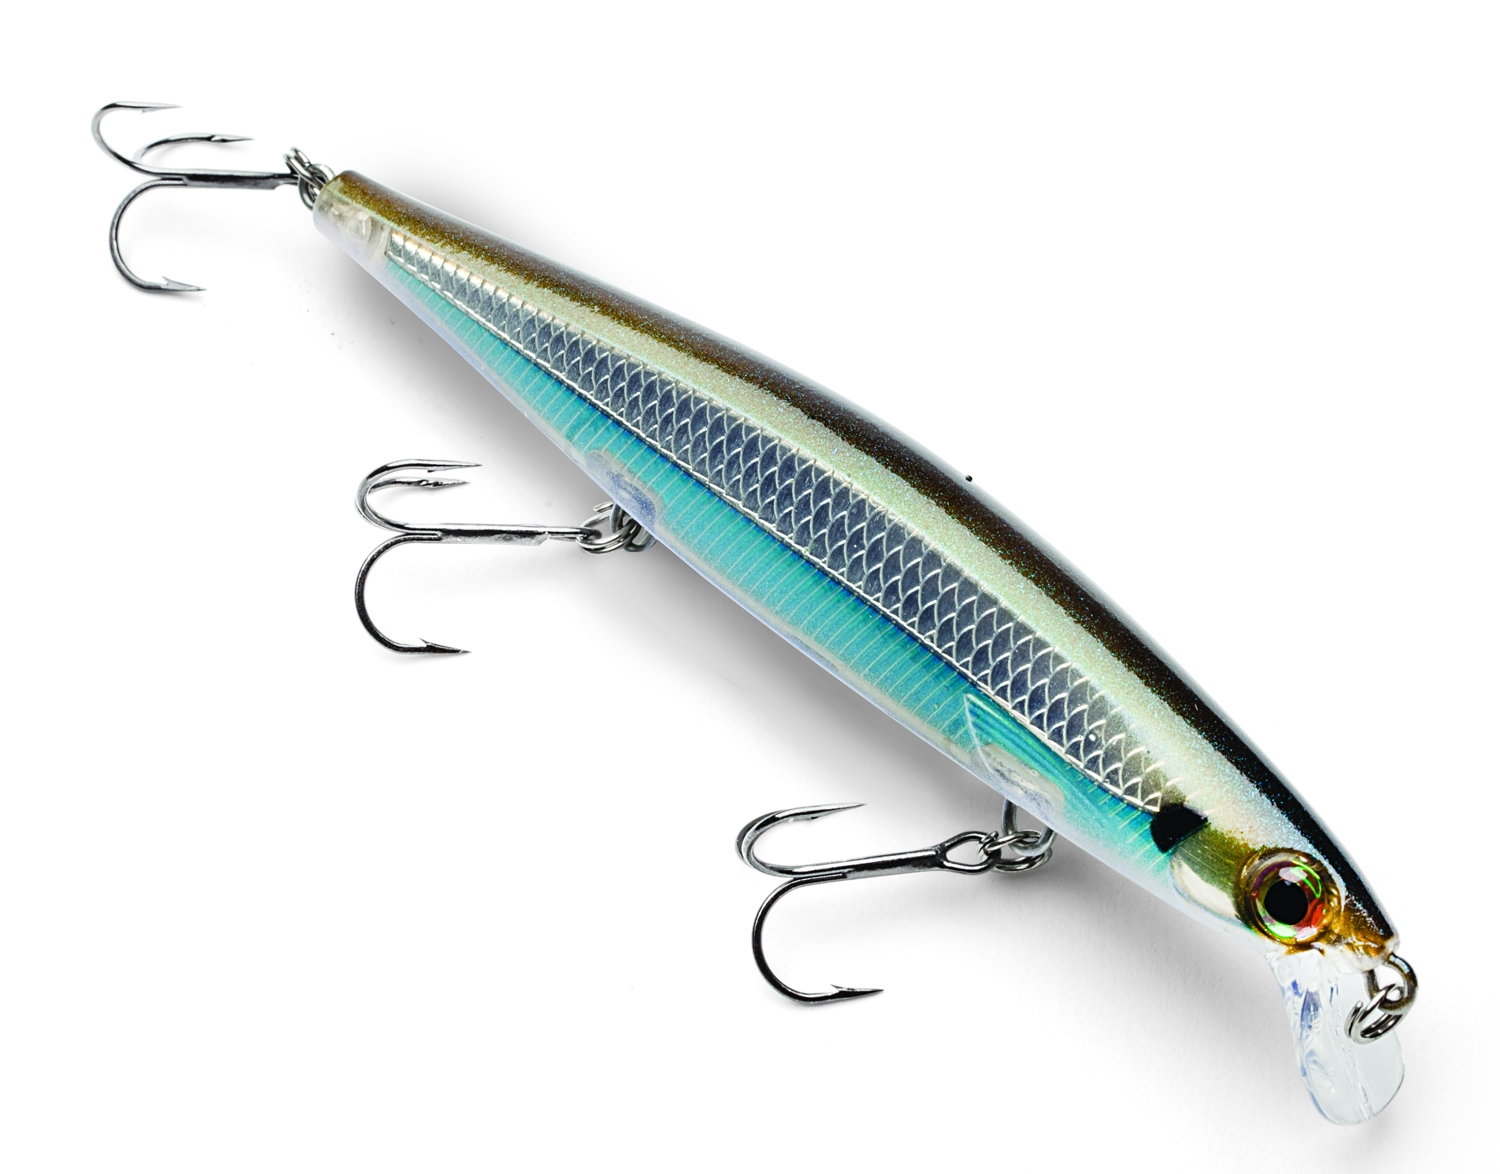 15 Top Jerkbait Lures | Sport Fishing Magazine